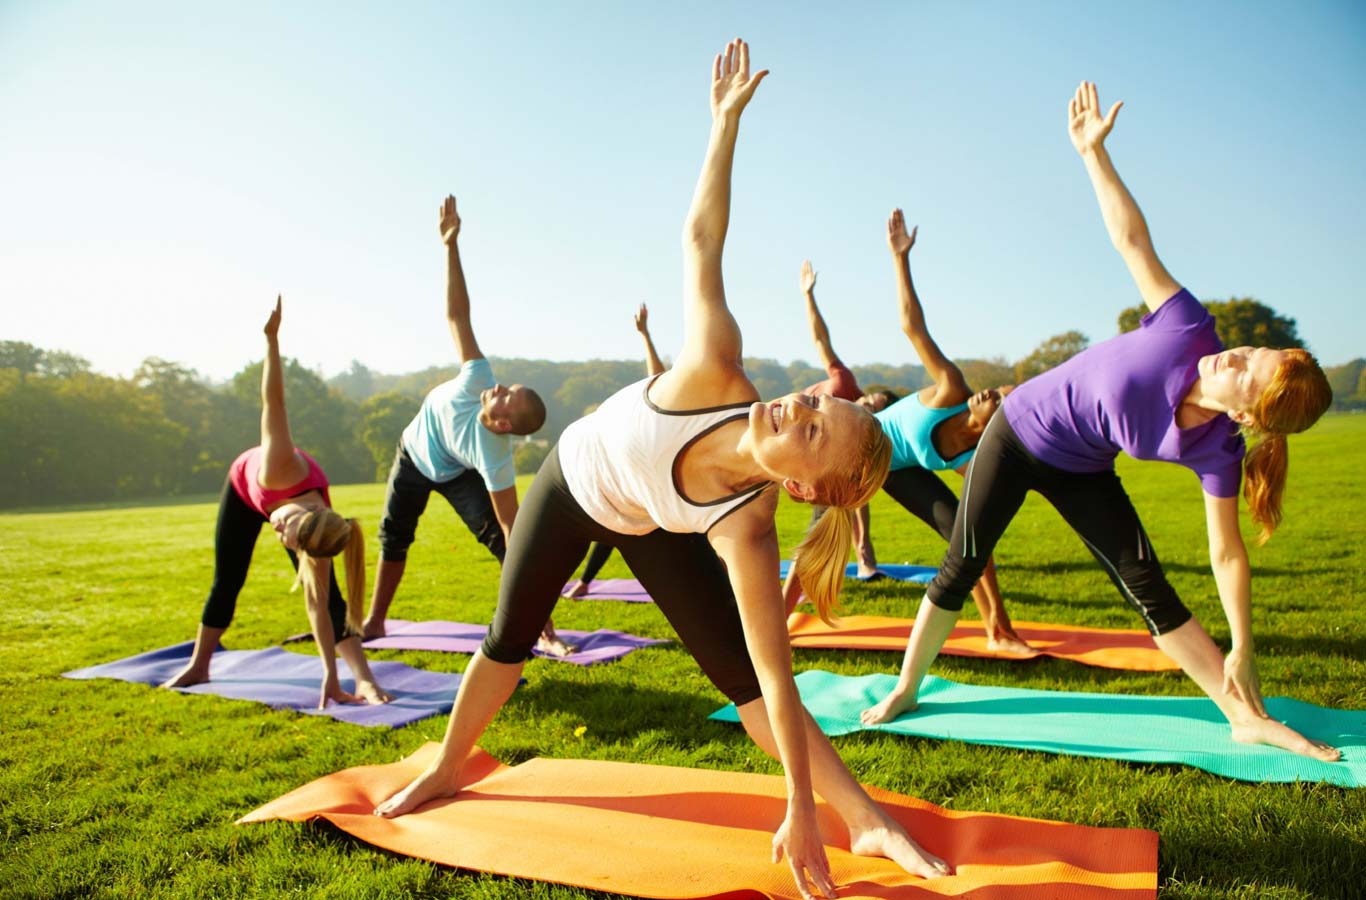 Yoga ds - Bodyscuplture Yoga Exercise Camping Mat